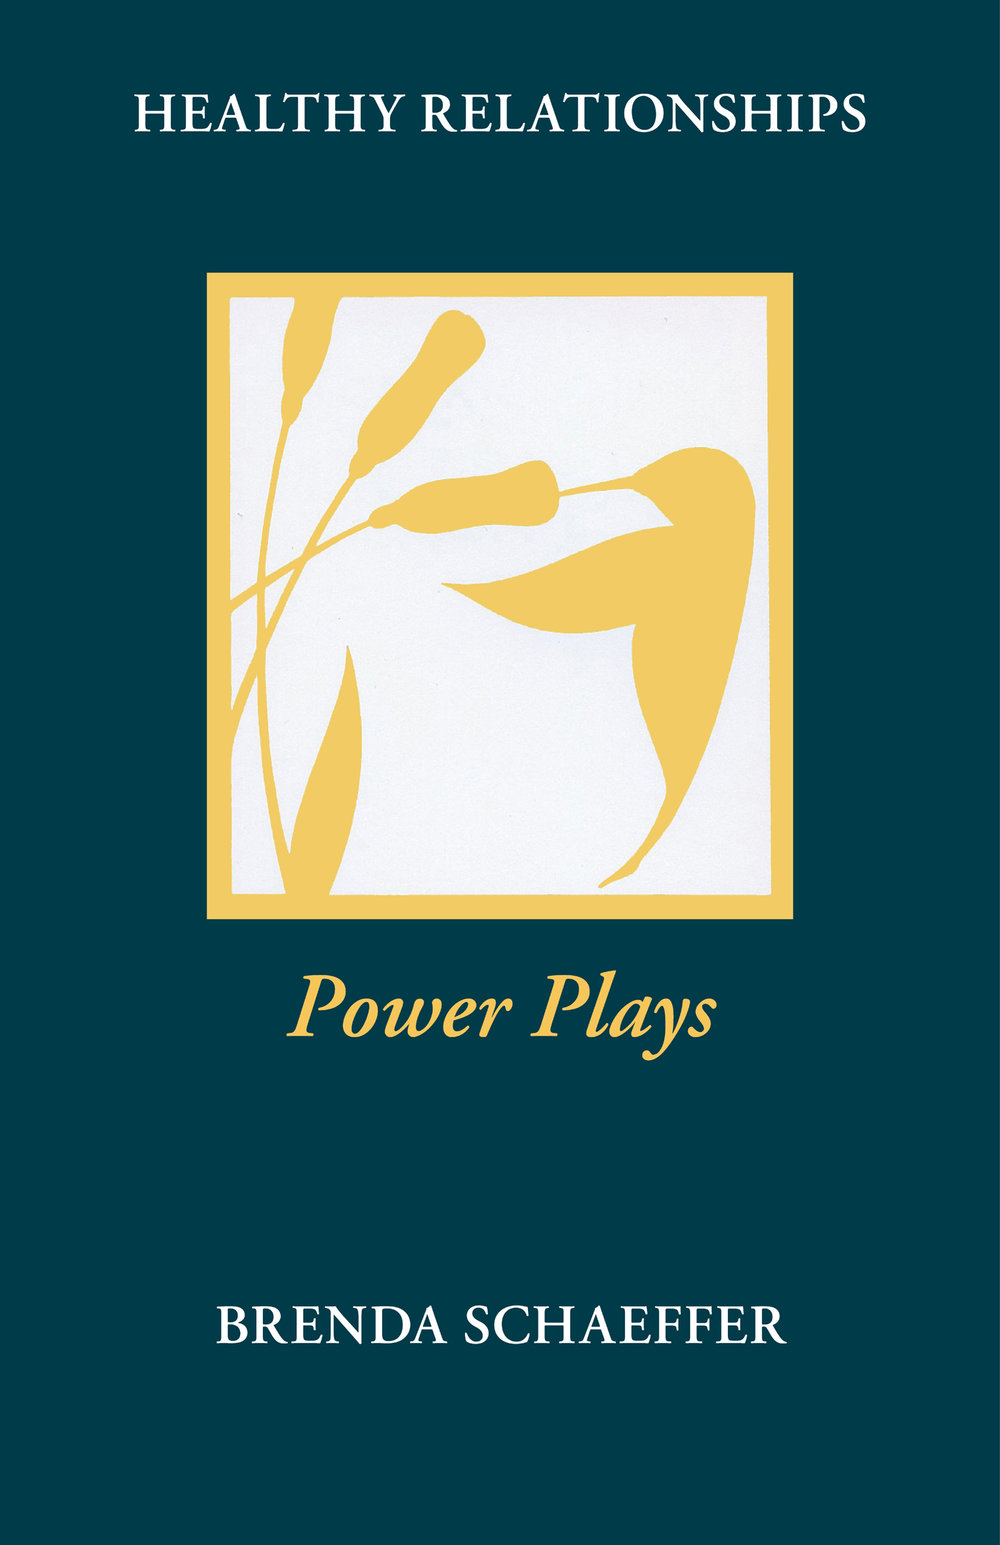 power plays cover.jpg